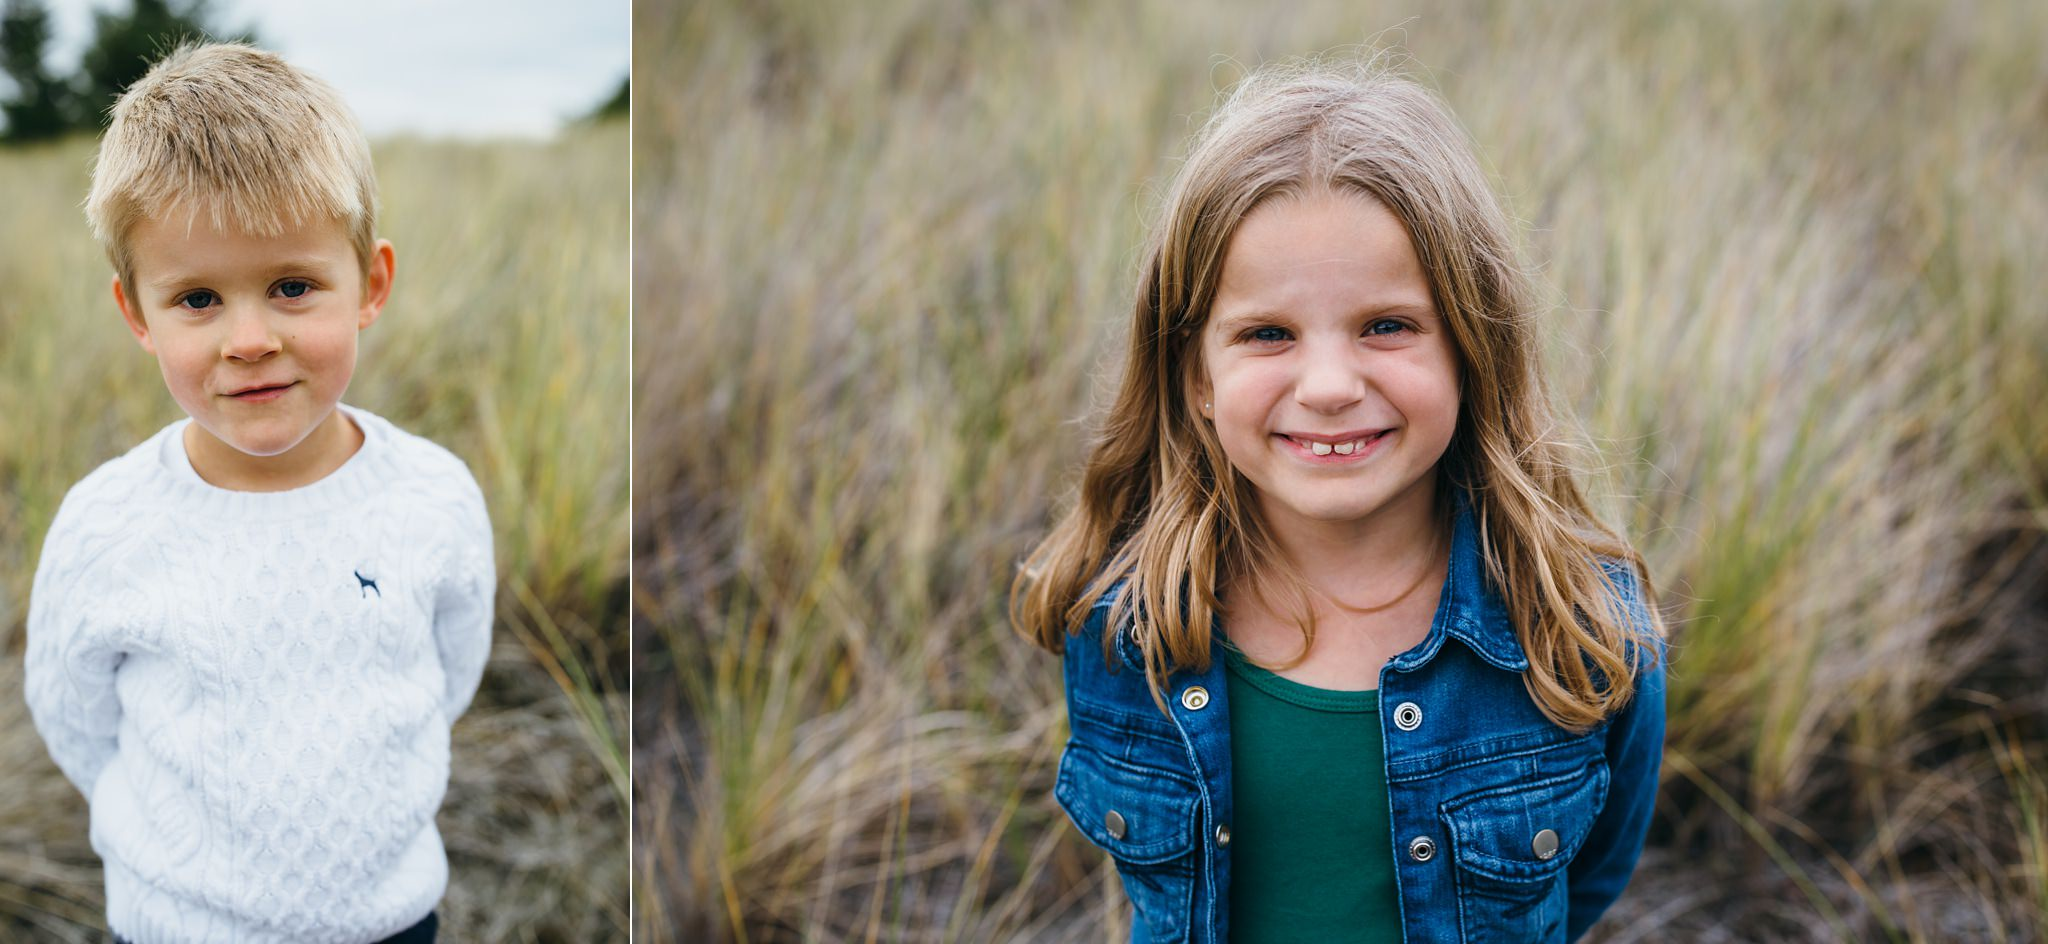 kara chappell whidbey island family photography brother and sister smile and laugh in field